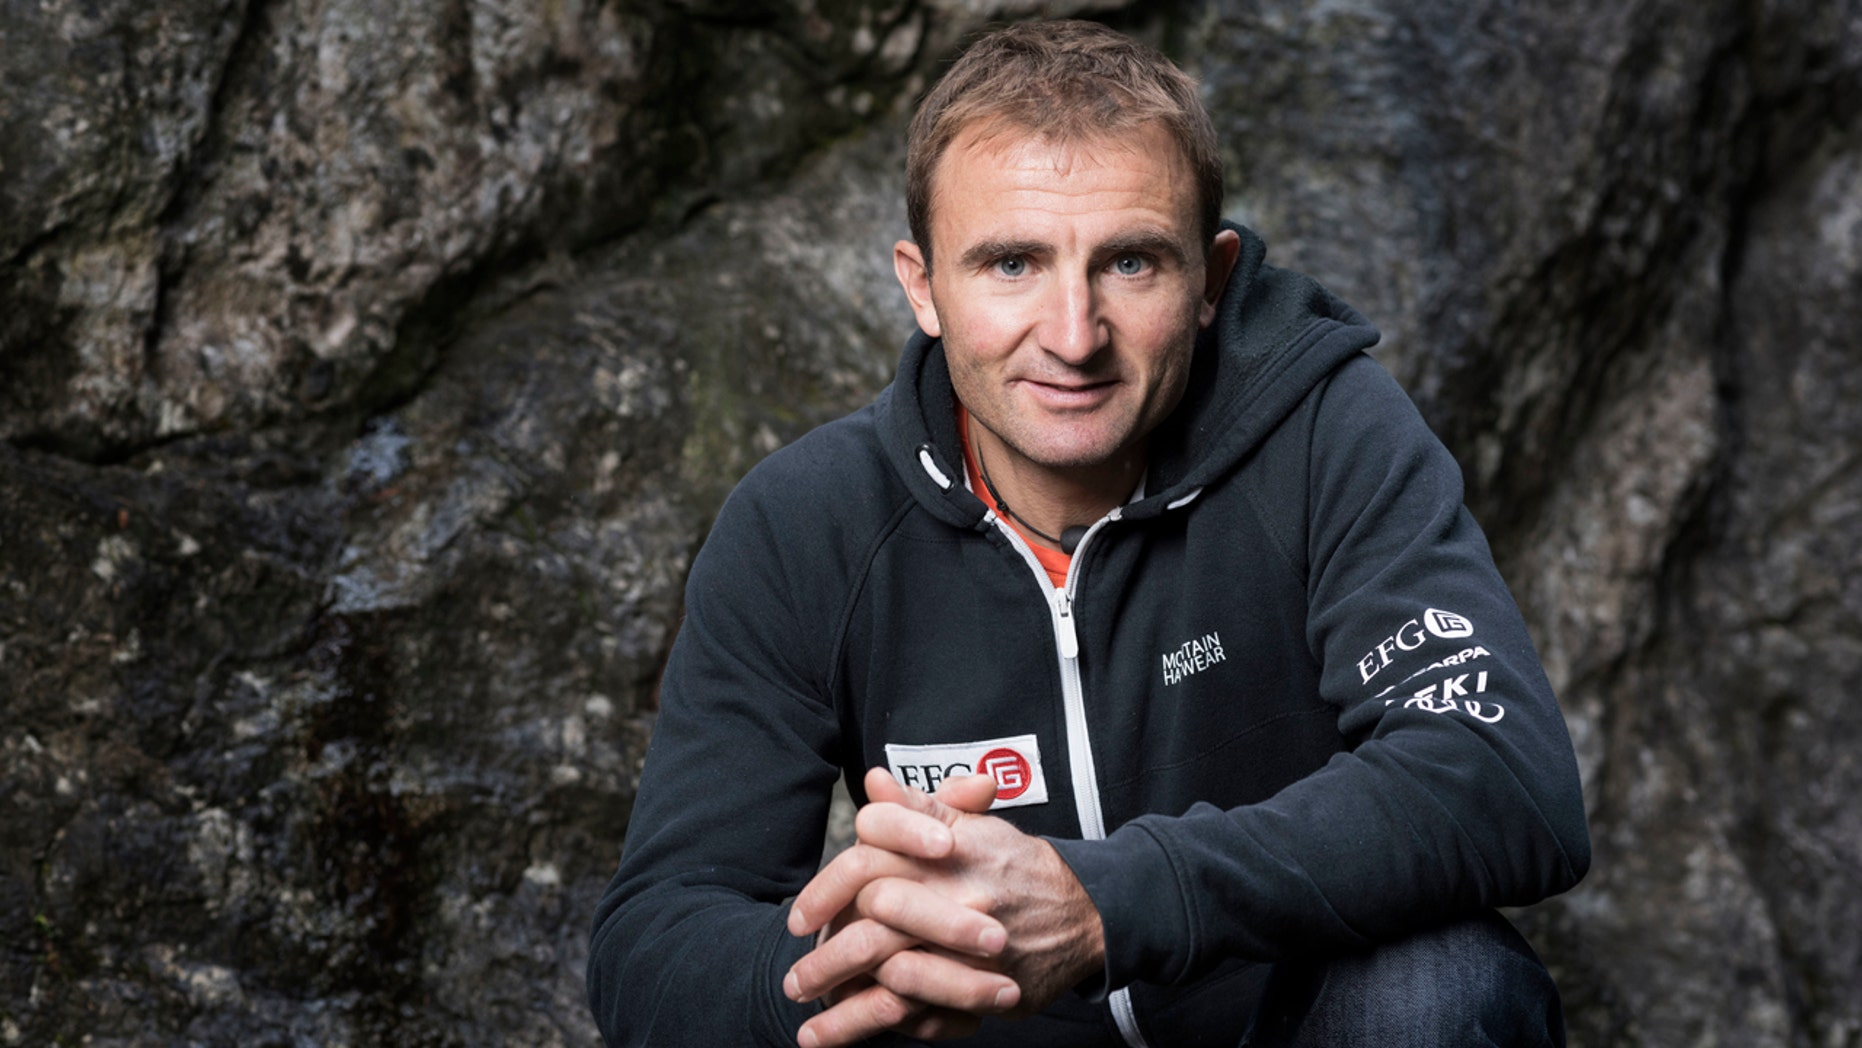 In this Sept. 11, 2015 file photo Swiss climber Ueli Steck poses for a photo at the foot of a climbing wall in Wilderswil, Canton of Berne, Switzerland.